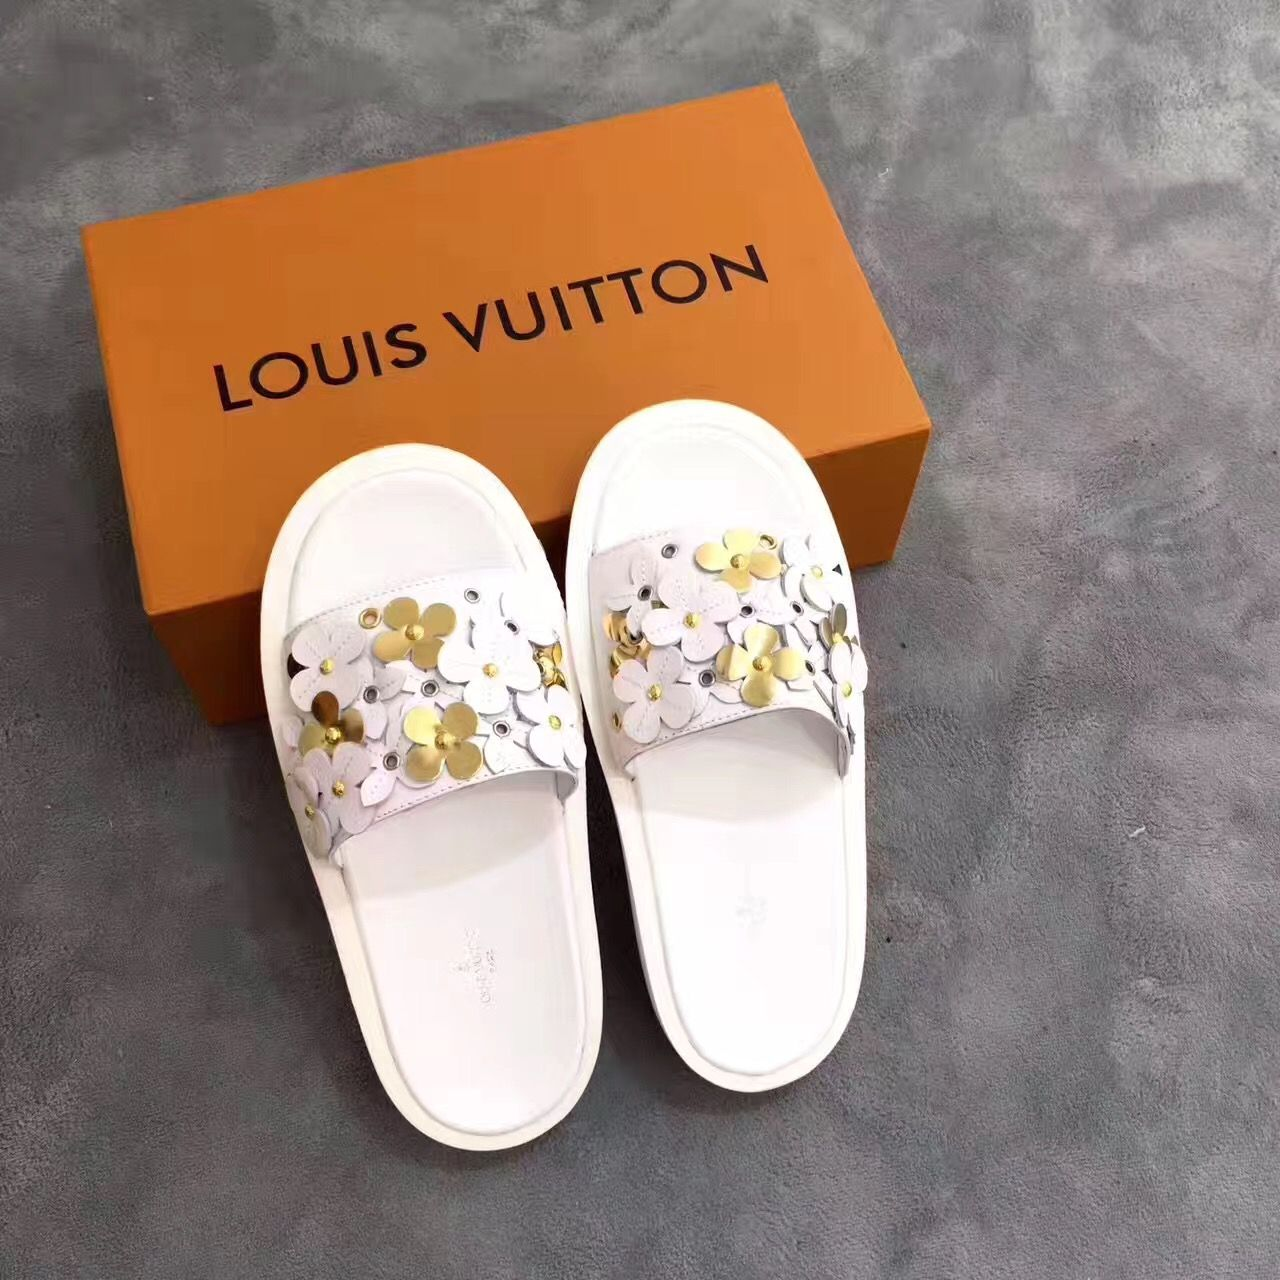 Louis Vuitton Lv Woman Shoes Flowers Slippers Slides Slippers